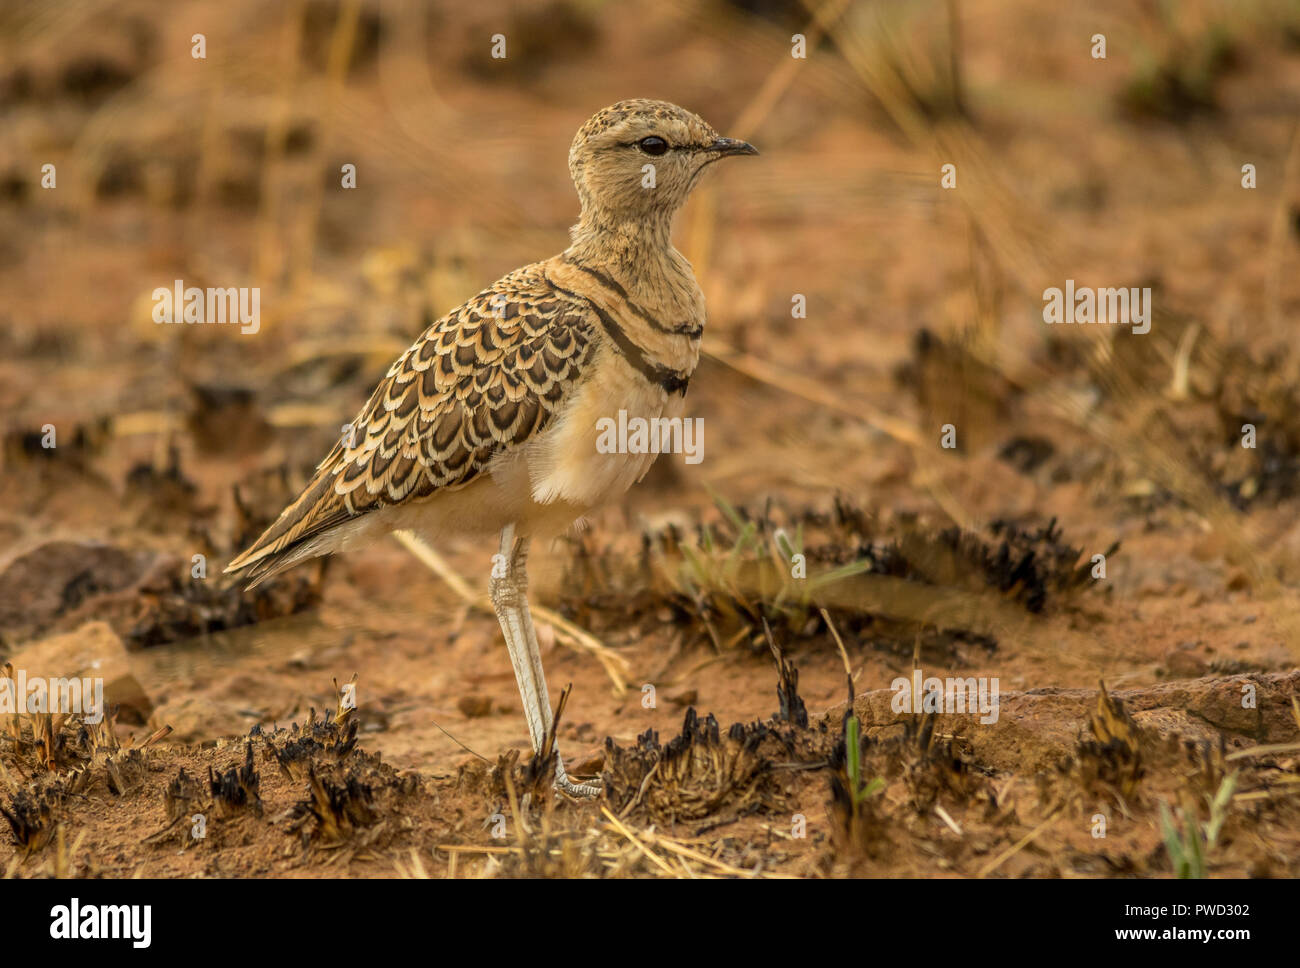 Double-banded courser stands quietly in a burnt patch of grass on the African plains image with copy space in landscape format - Stock Image